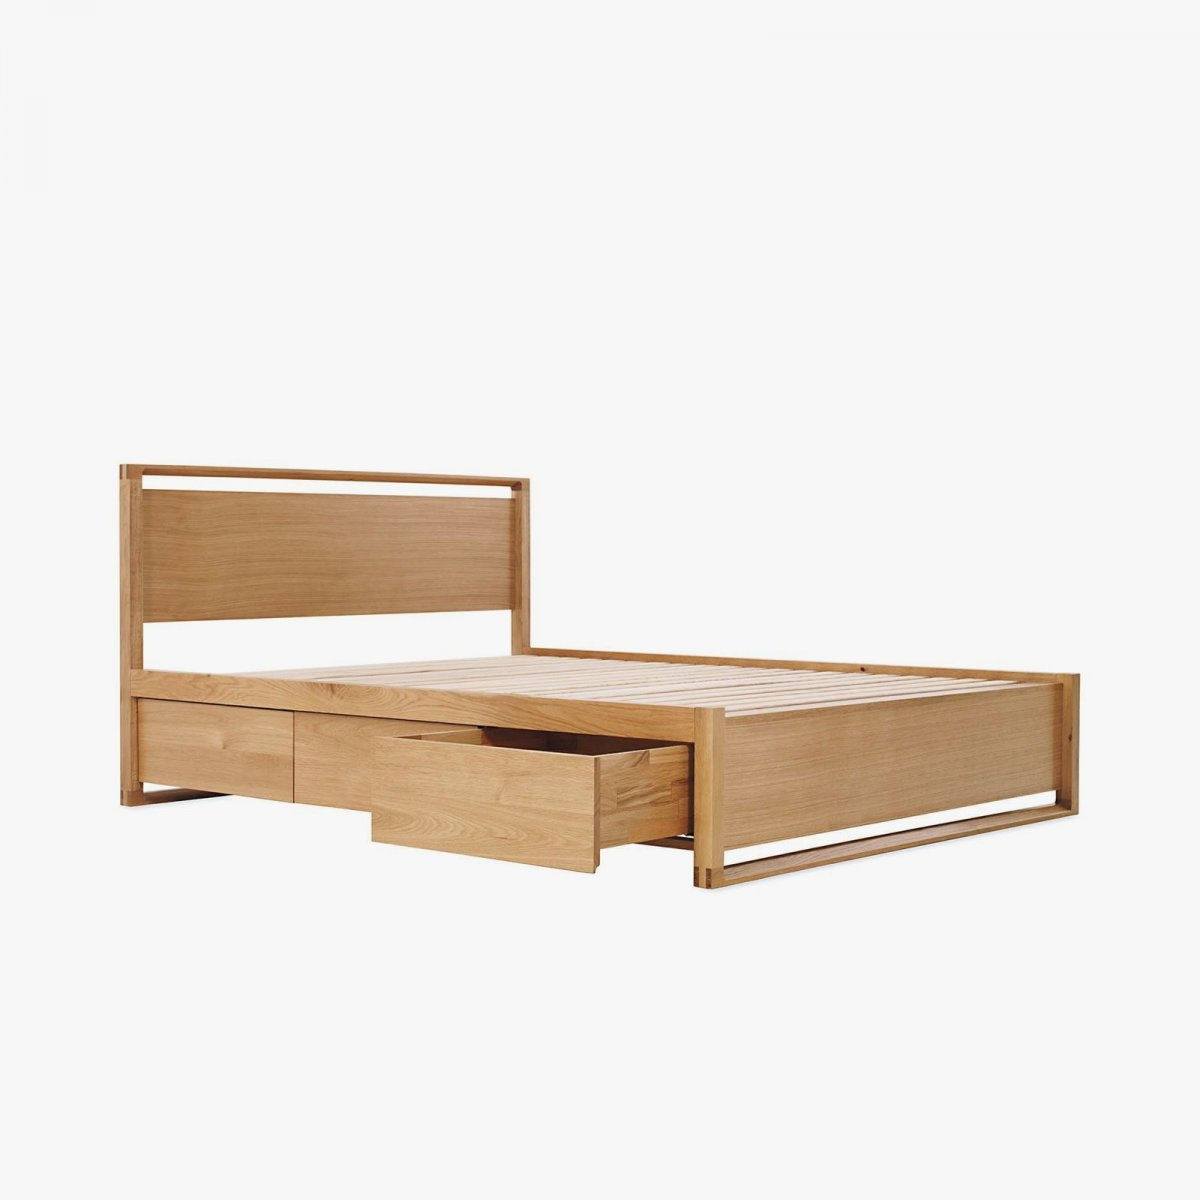 Matera Bed with Storage, oak.